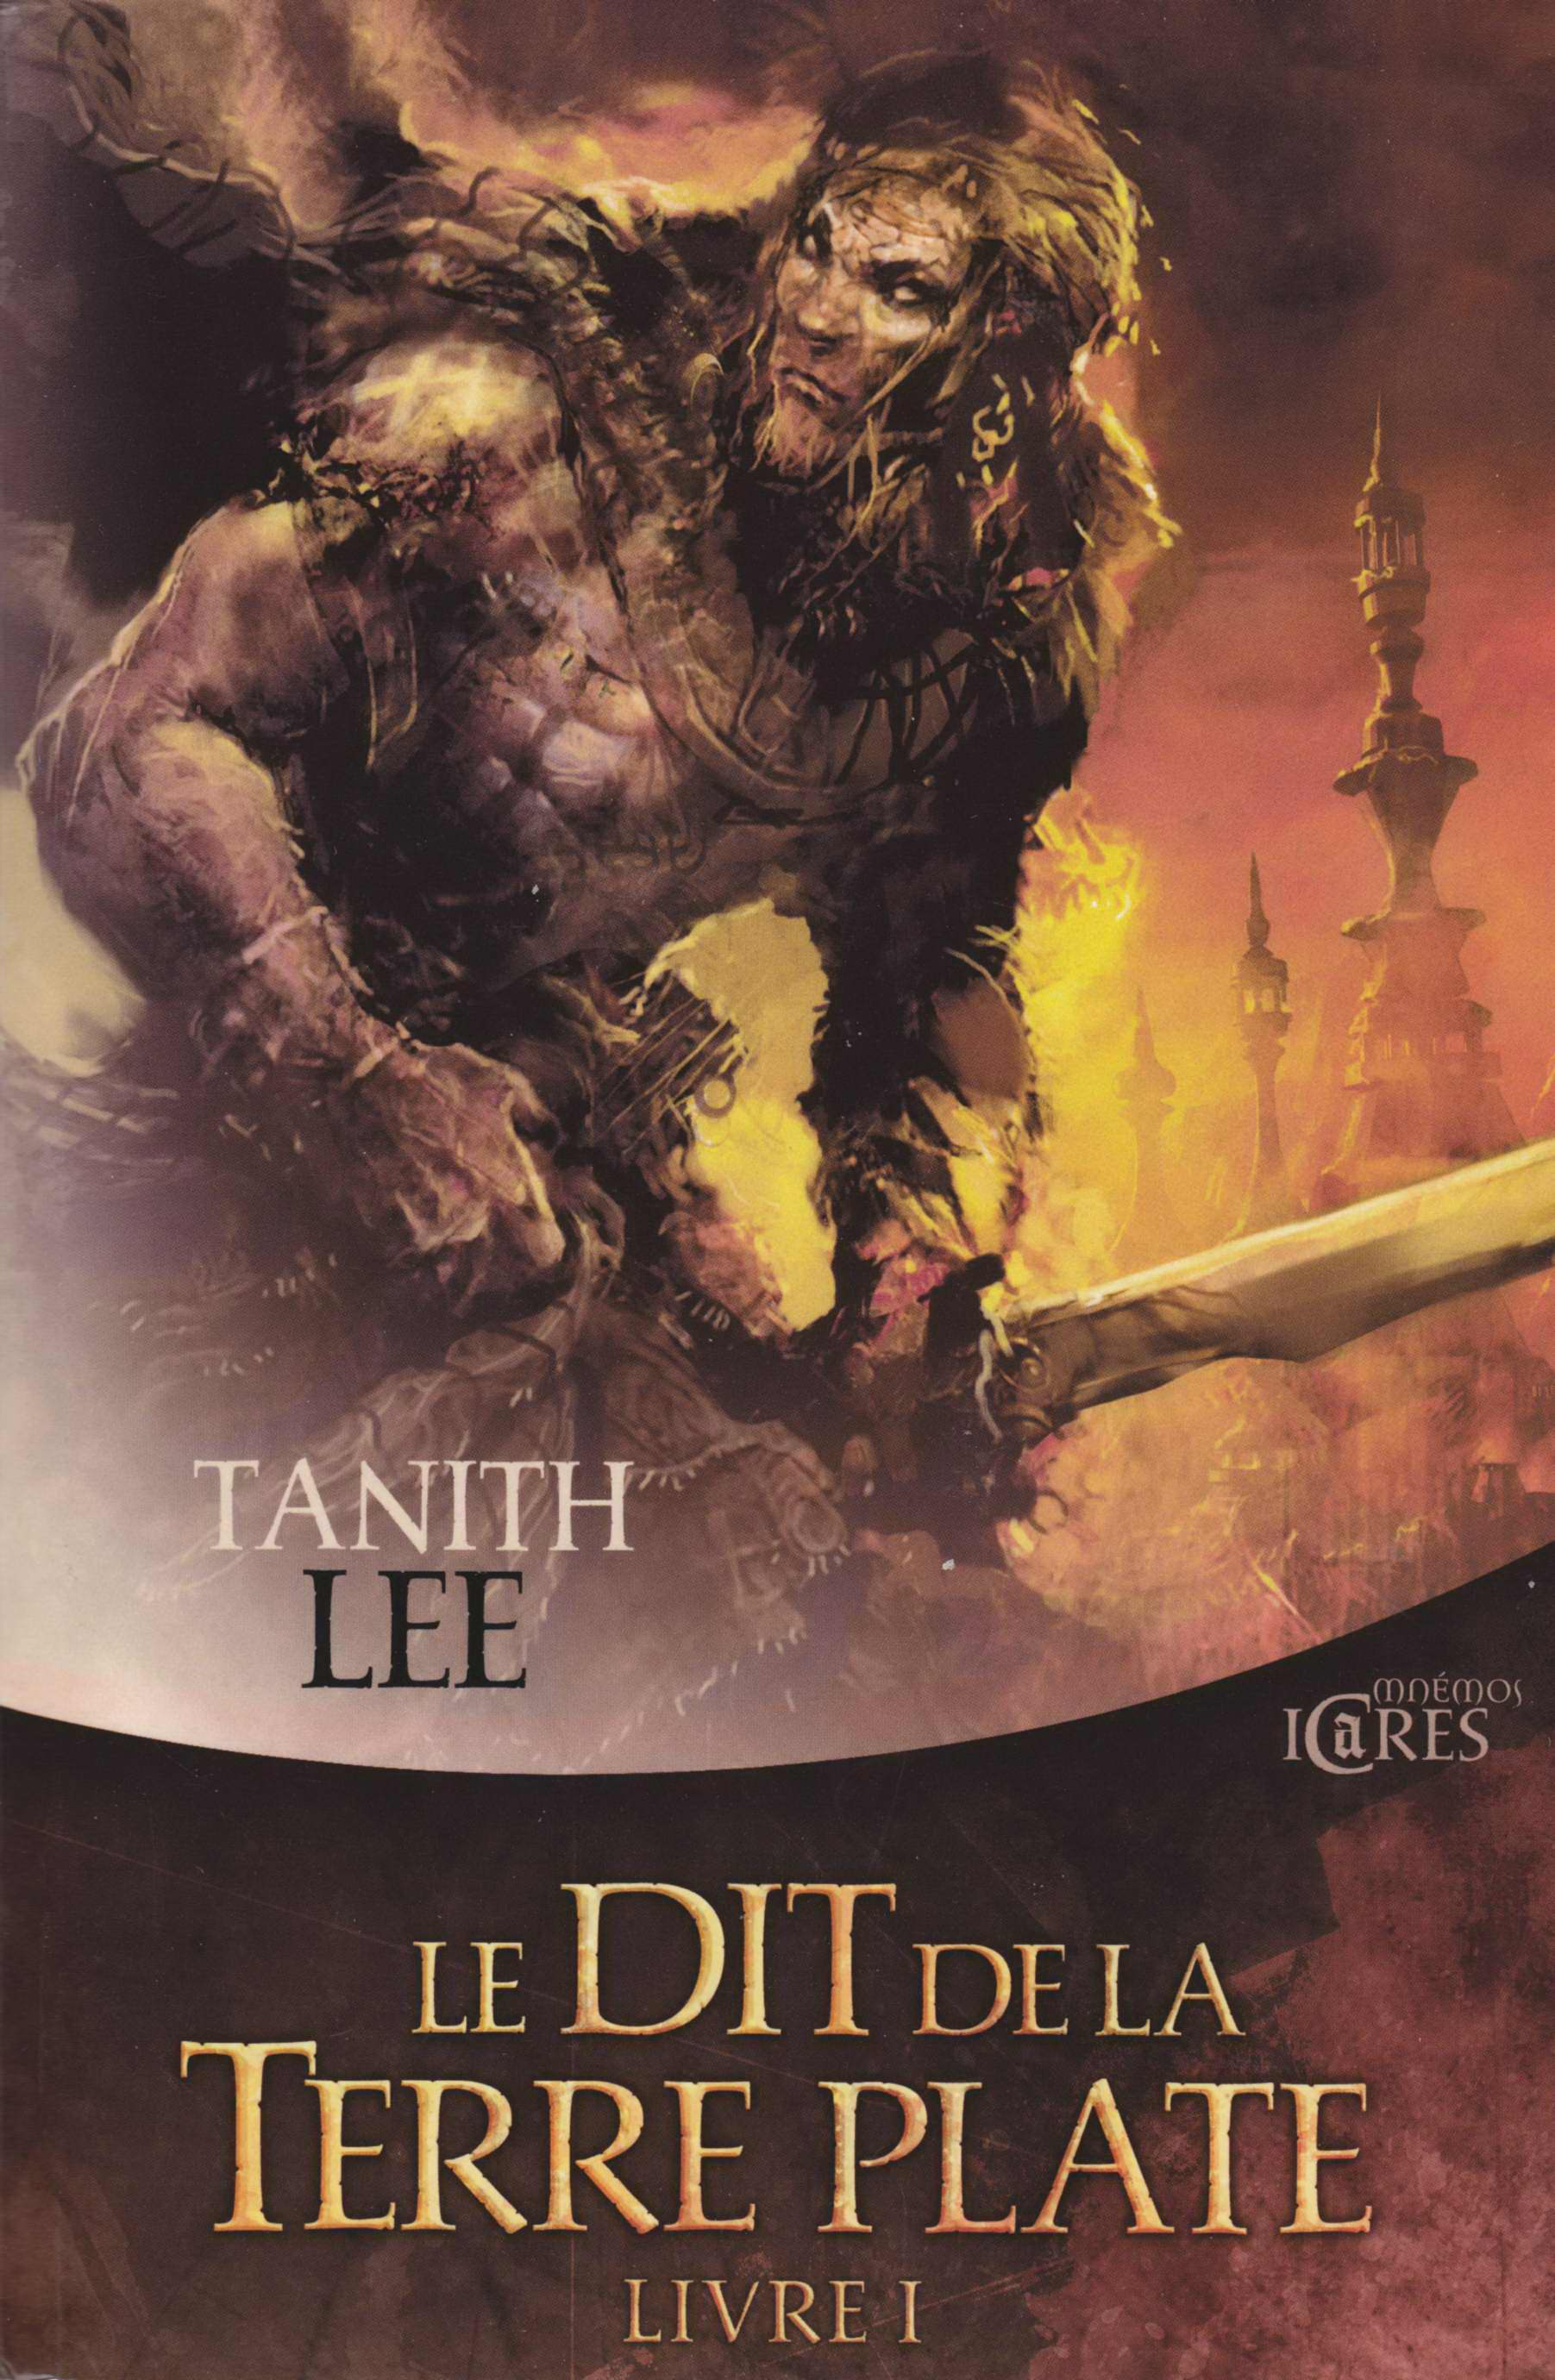 Le Dit De La Terre Plate (Tales From The Flat Earth) Book One